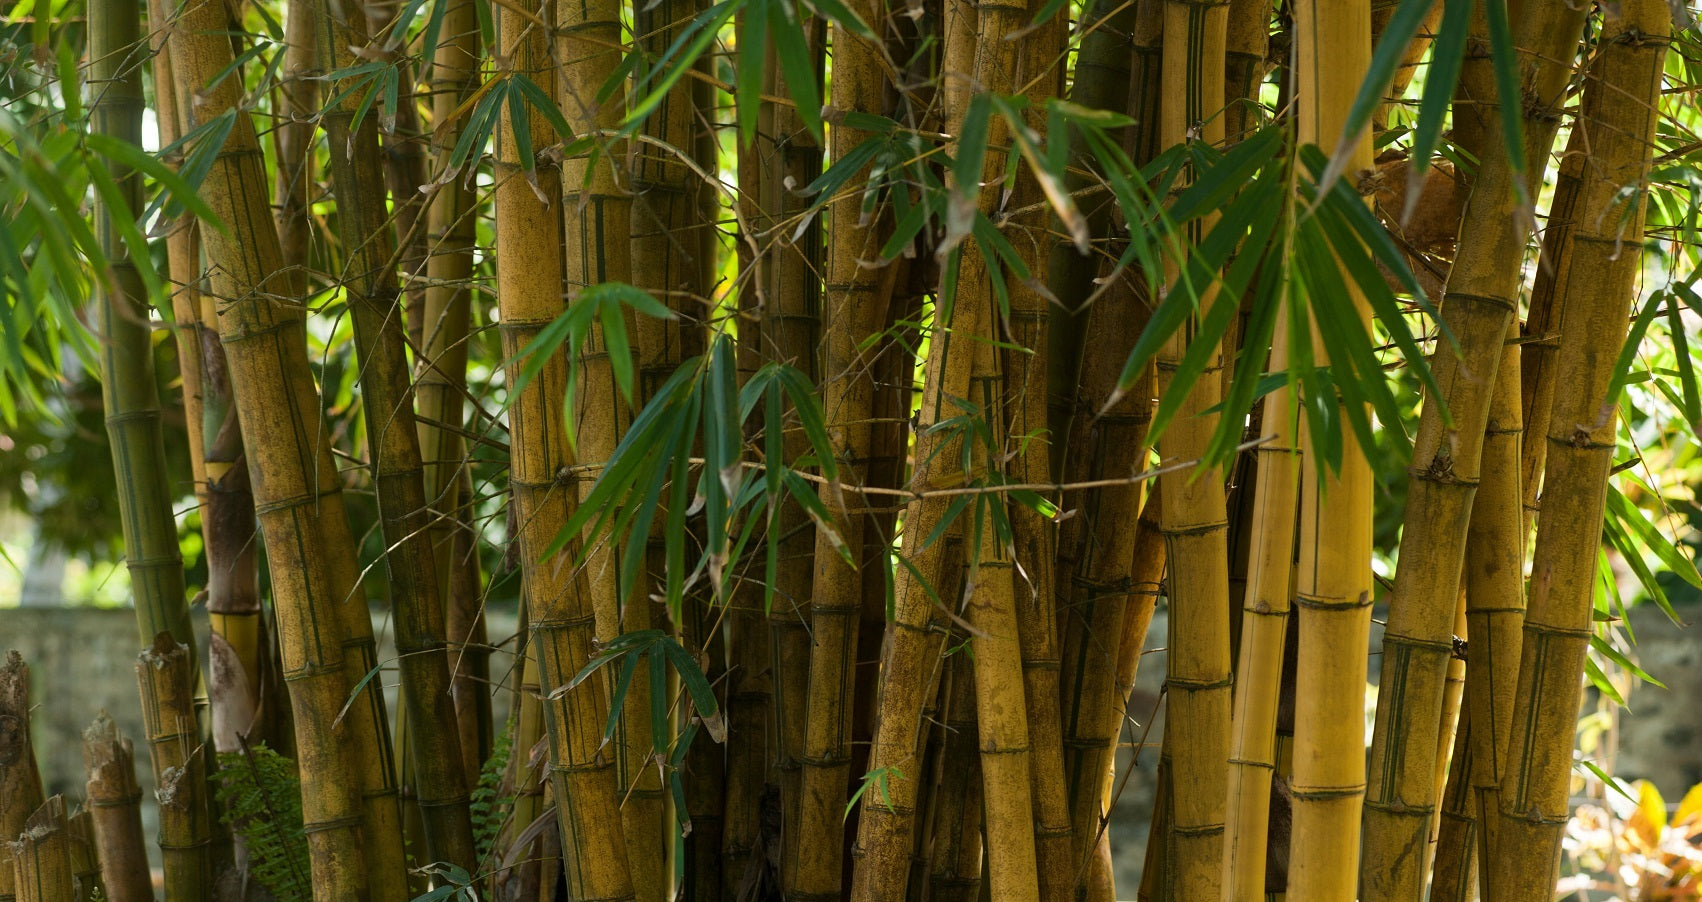 How sustainable is bamboo?